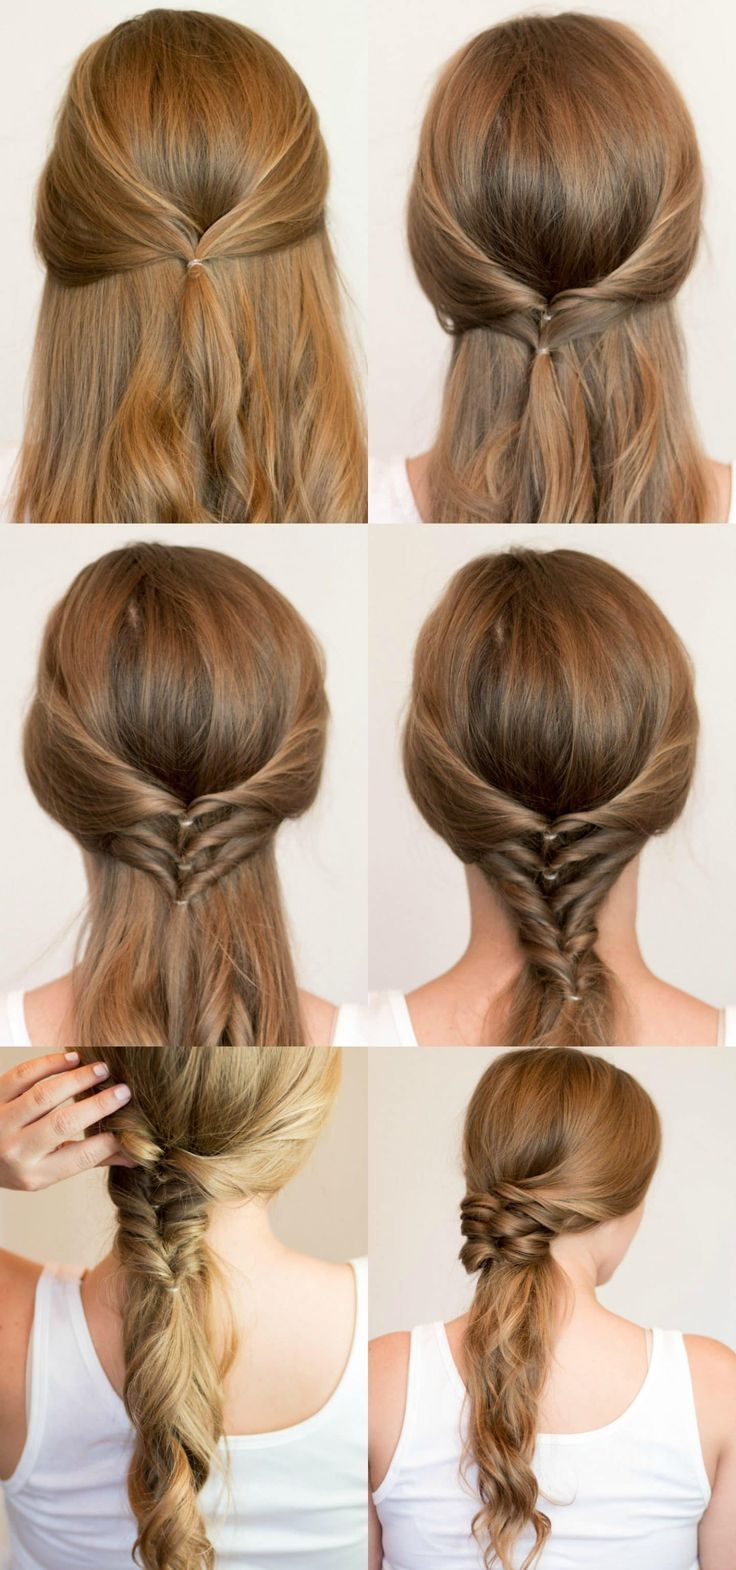 12 Sumptuous Side Easy Hairstyles Long Hair To Please Any Taste